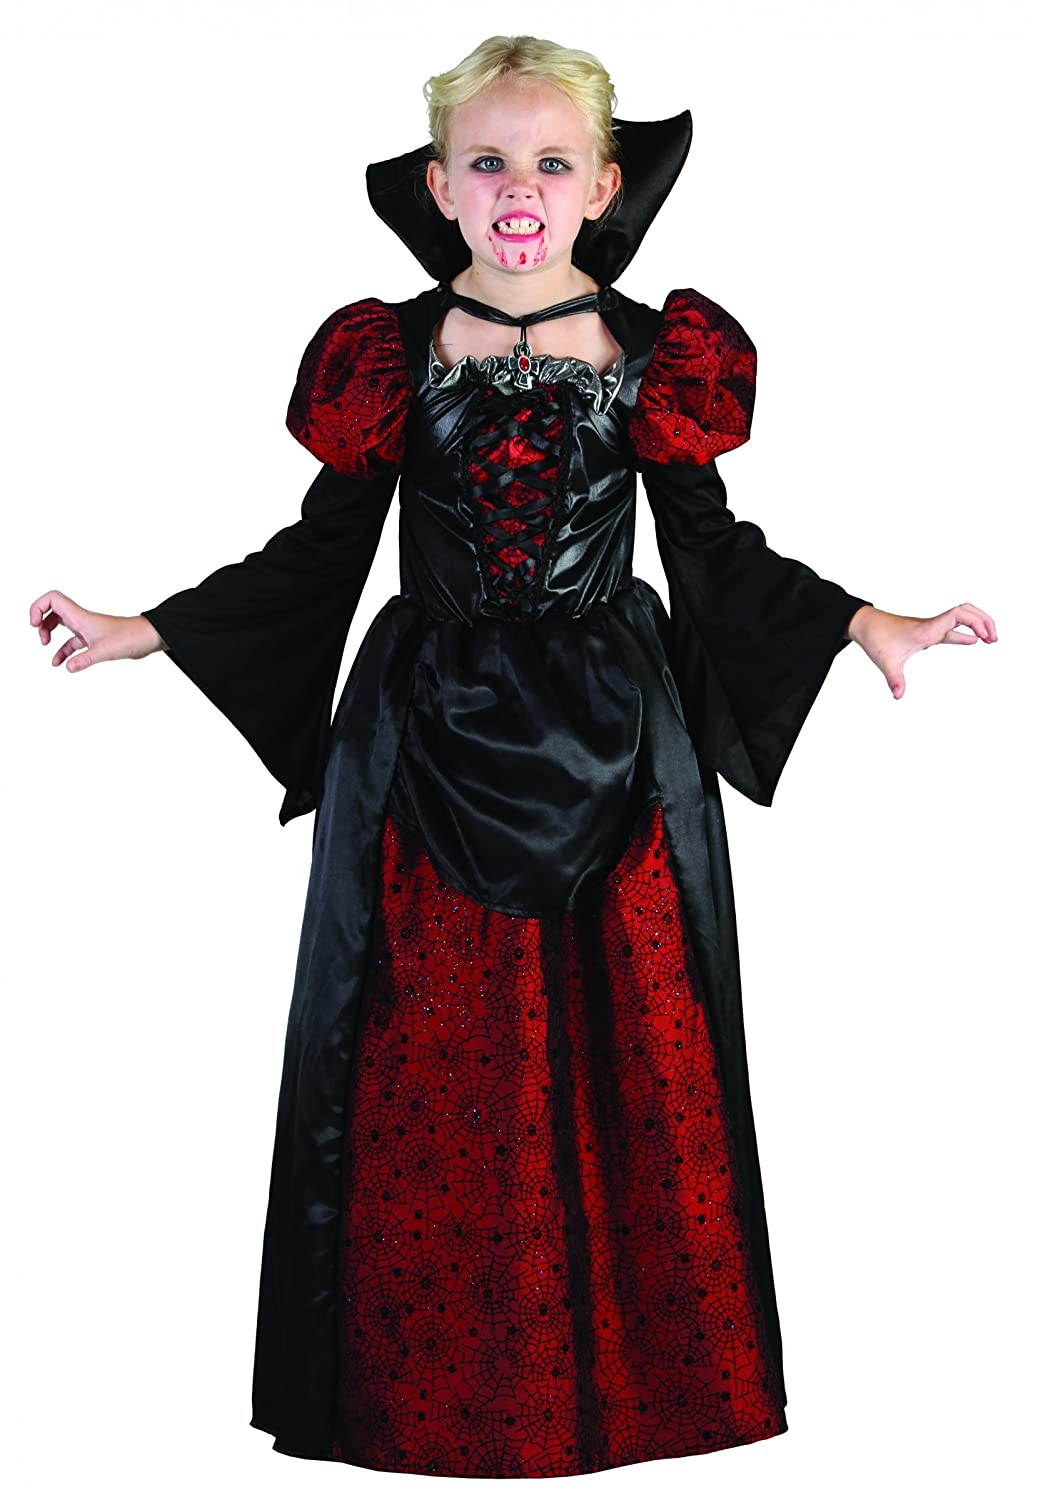 Girl's Vampire Fancy Dress Outfit